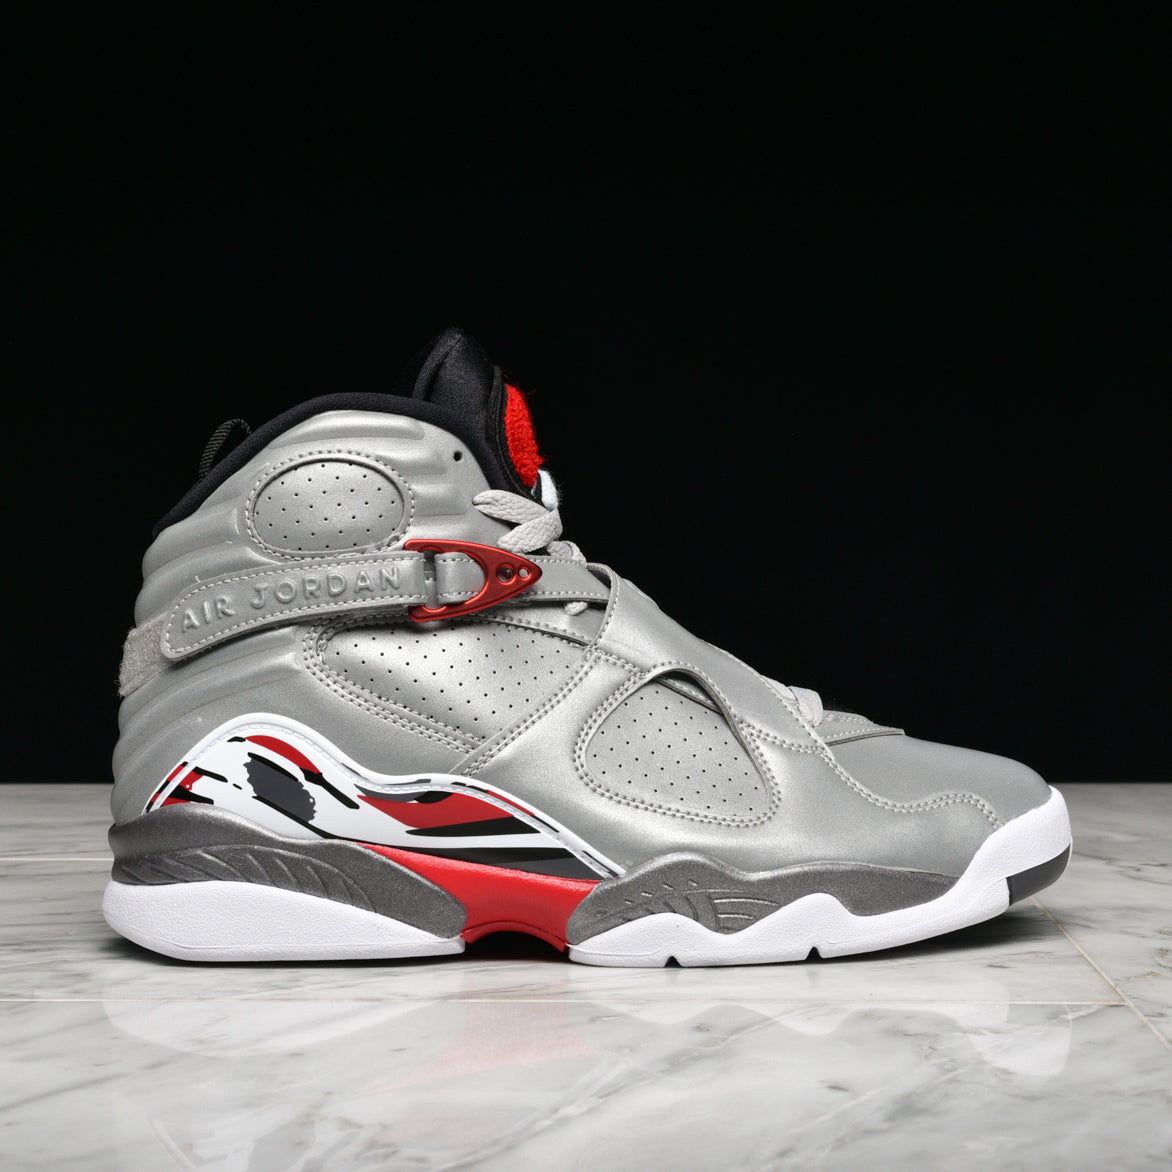 plus récent bb91e 007f7 AIR JORDAN 8 RETRO SP